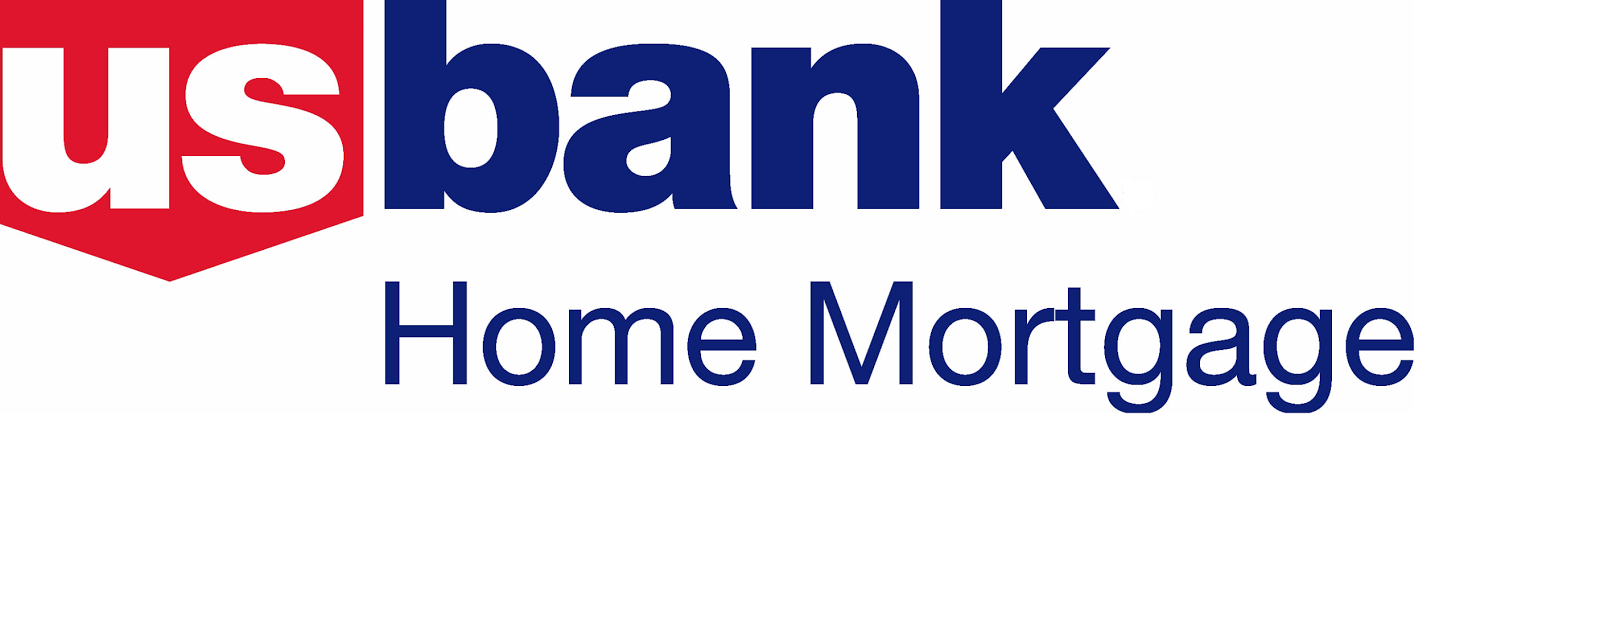 U.S. Bank Logo - Drive Out Homelessness Charity Golf Tournament